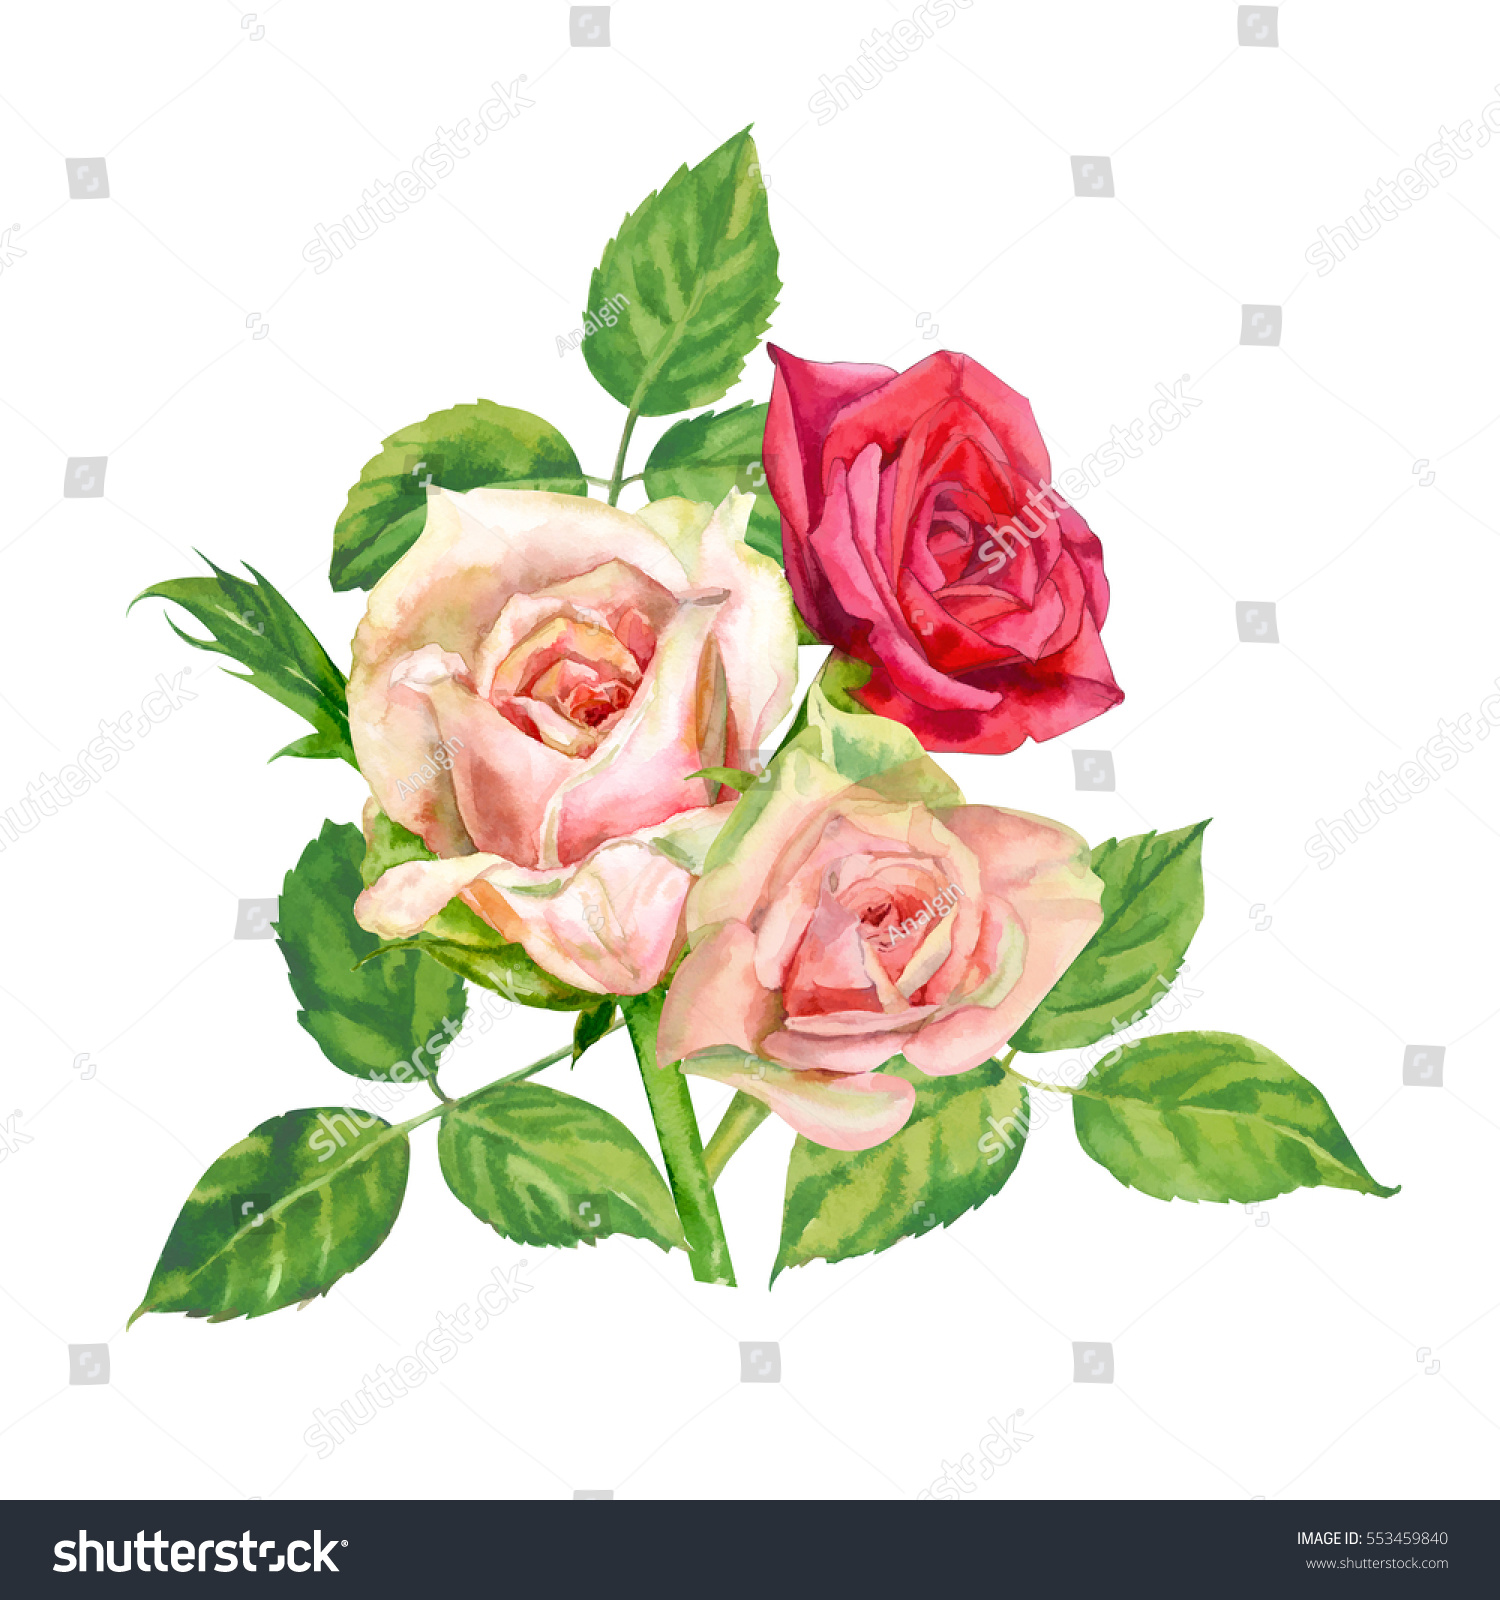 Bouquet Roses Pink Red Flowers Green Stock Illustration 553459840 ...